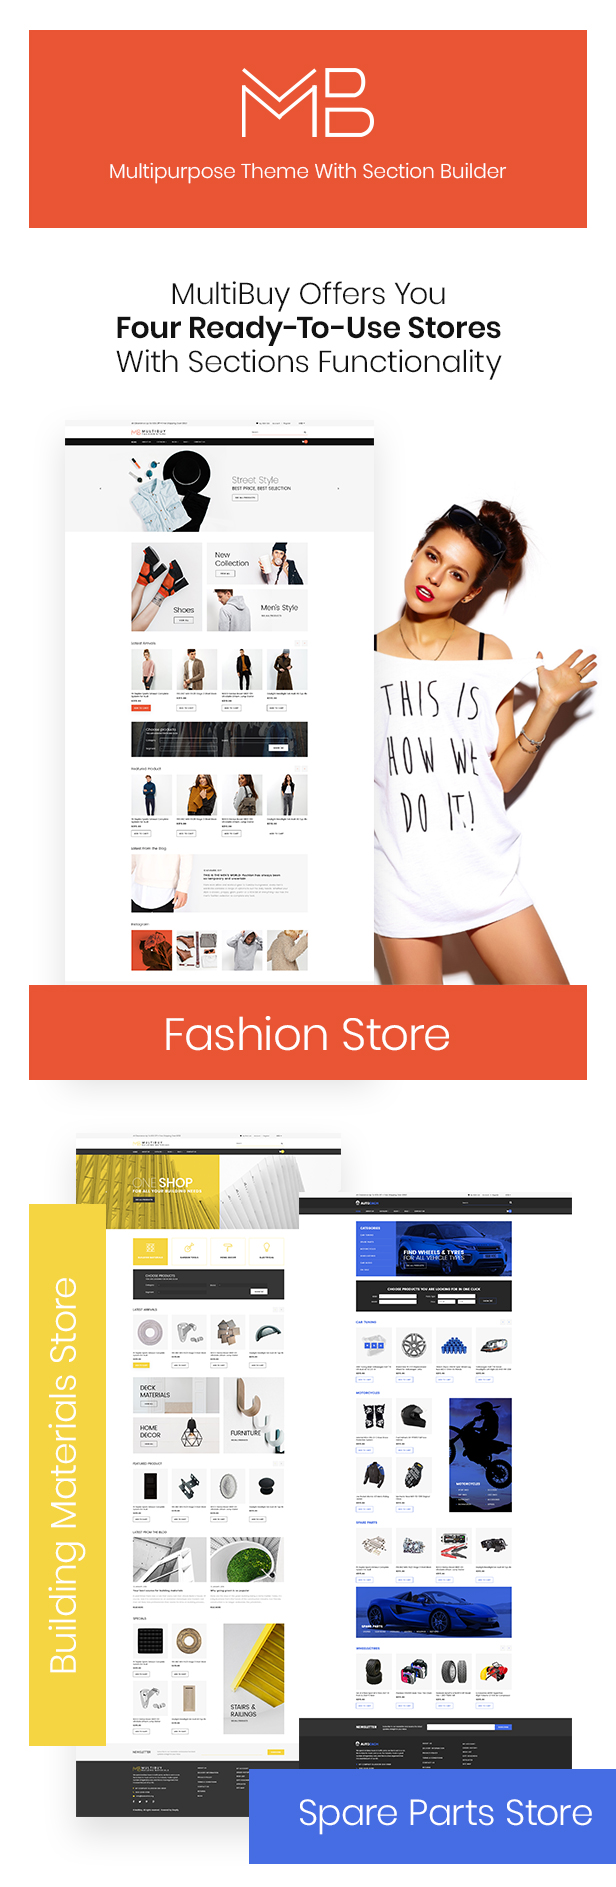 Multibuy - Multipurpose Shopify Theme with Section Builder - 1